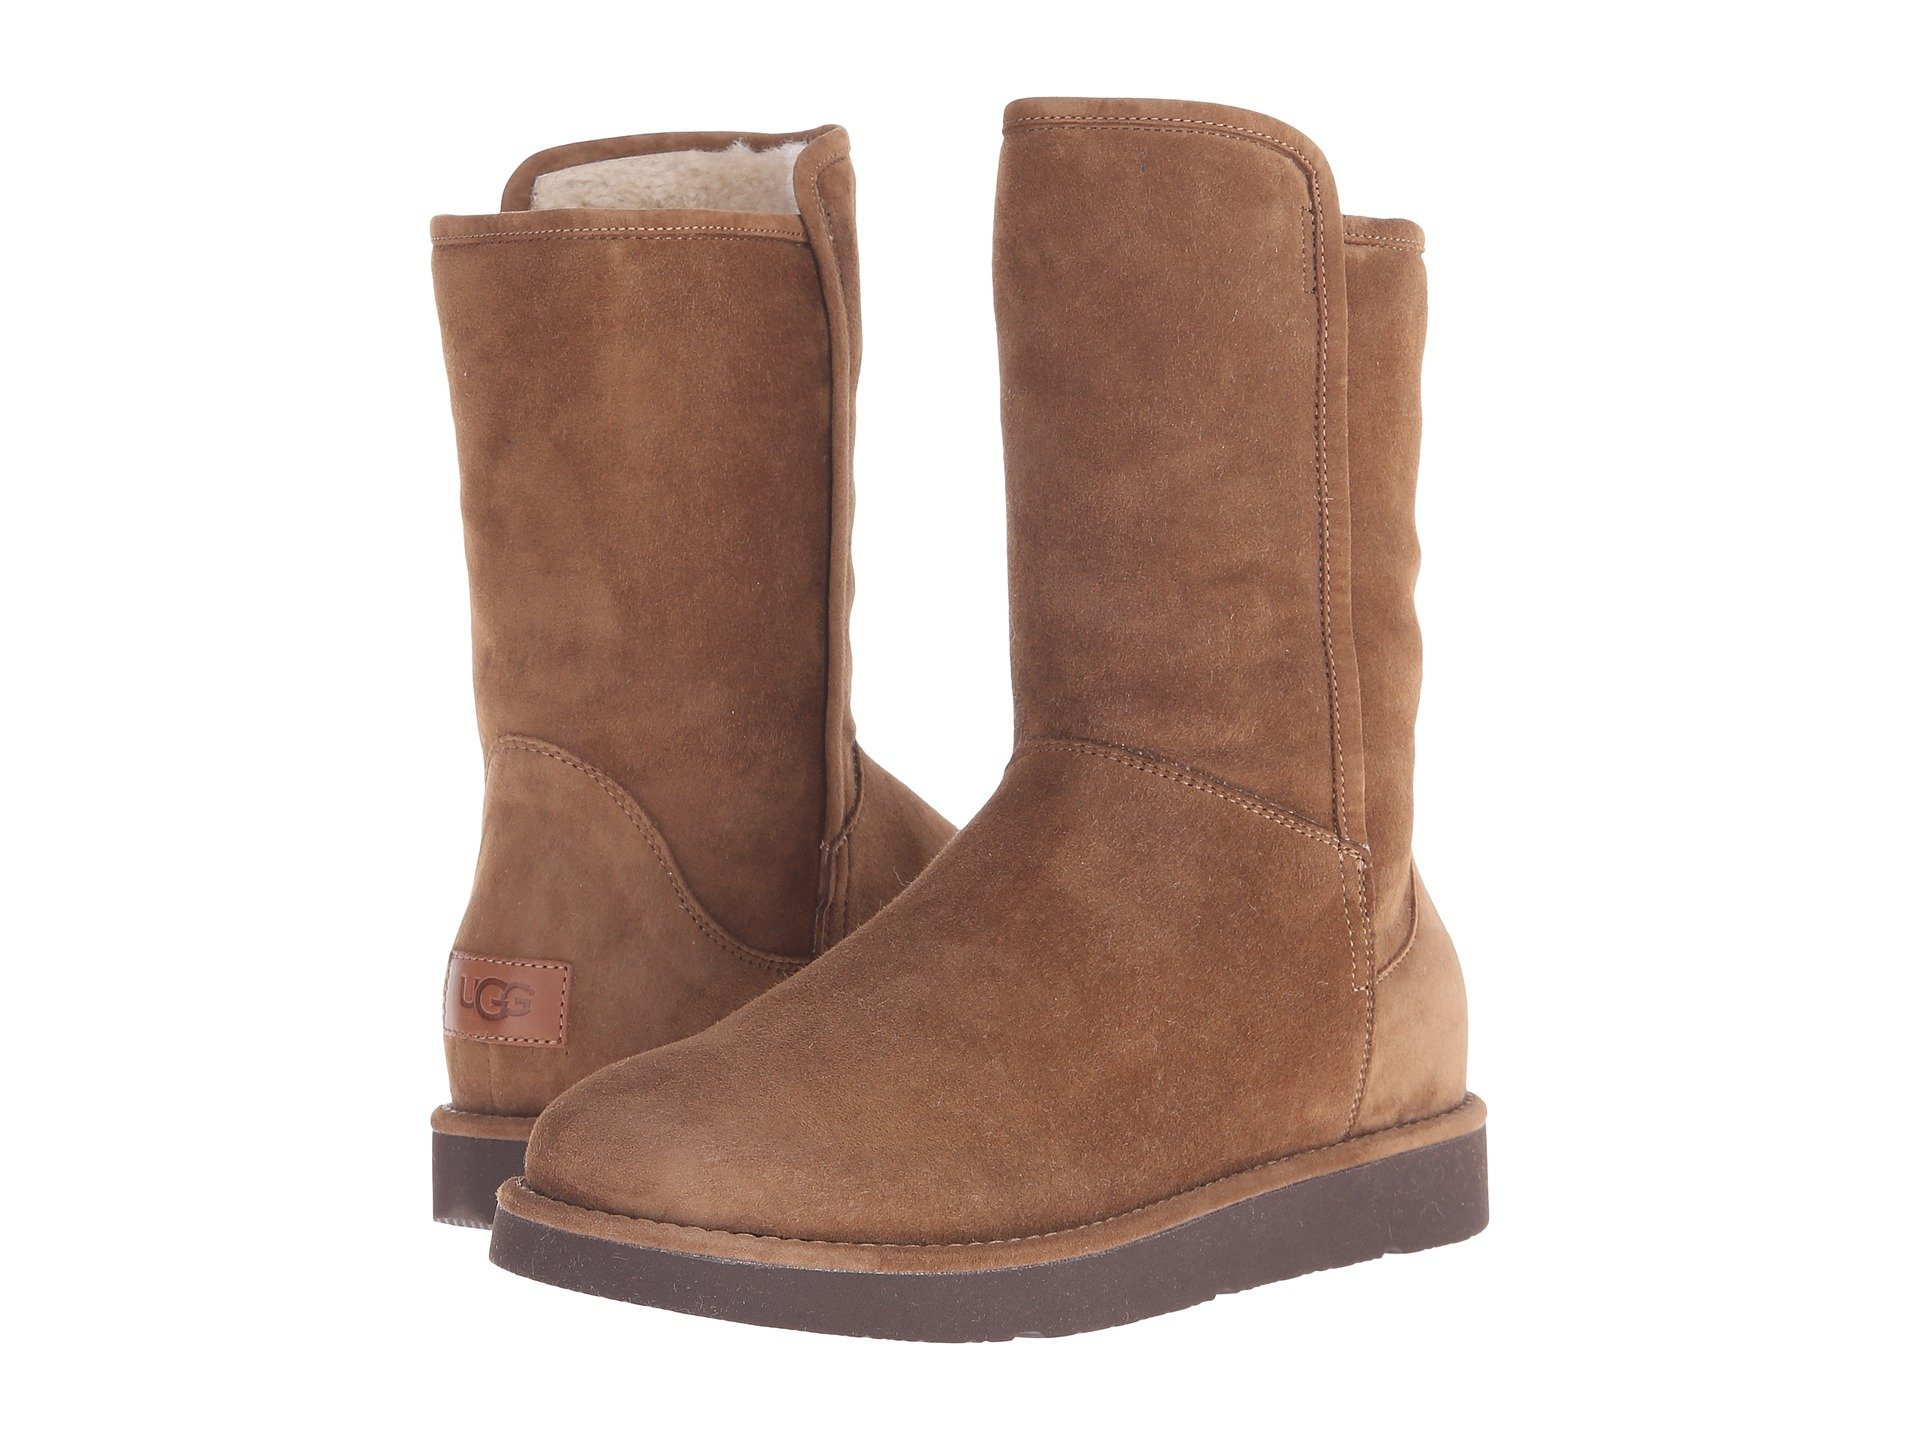 UGG Abree Short (Bruno) Women's Boots